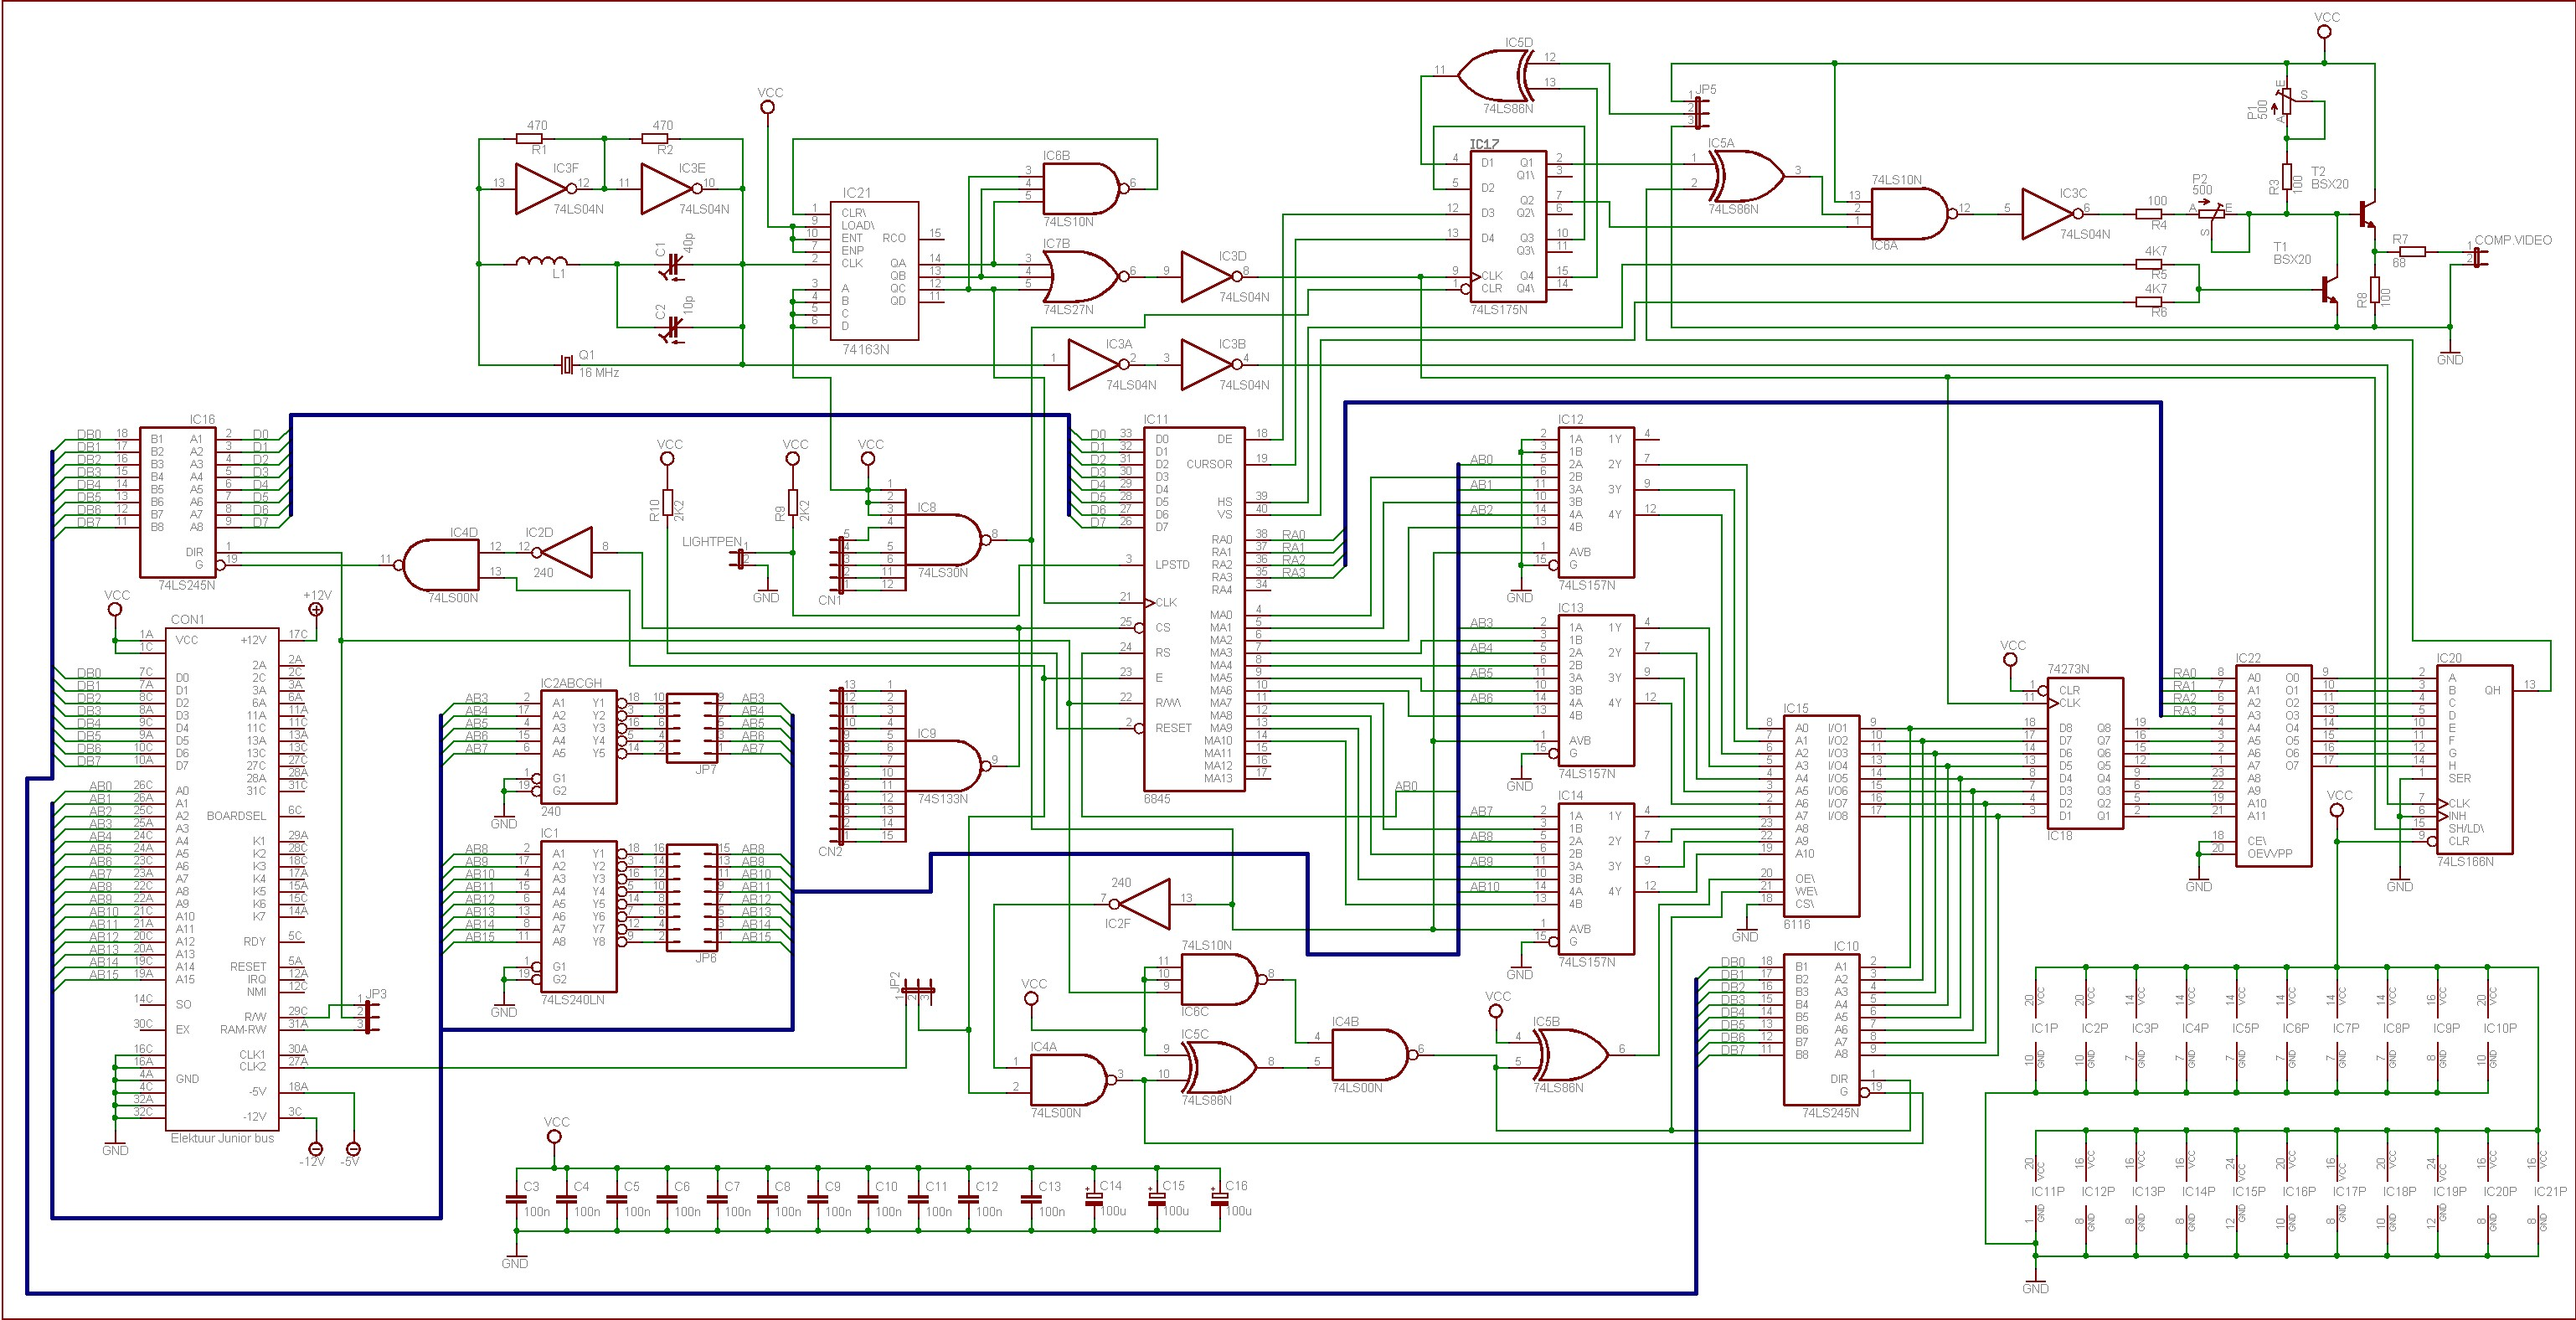 Electrical wiring diagram software open source wiring diagram image cad good tools for drawing schematics electrical engineering eagle humbucker diagram online electrical schematic asfbconference2016 Images